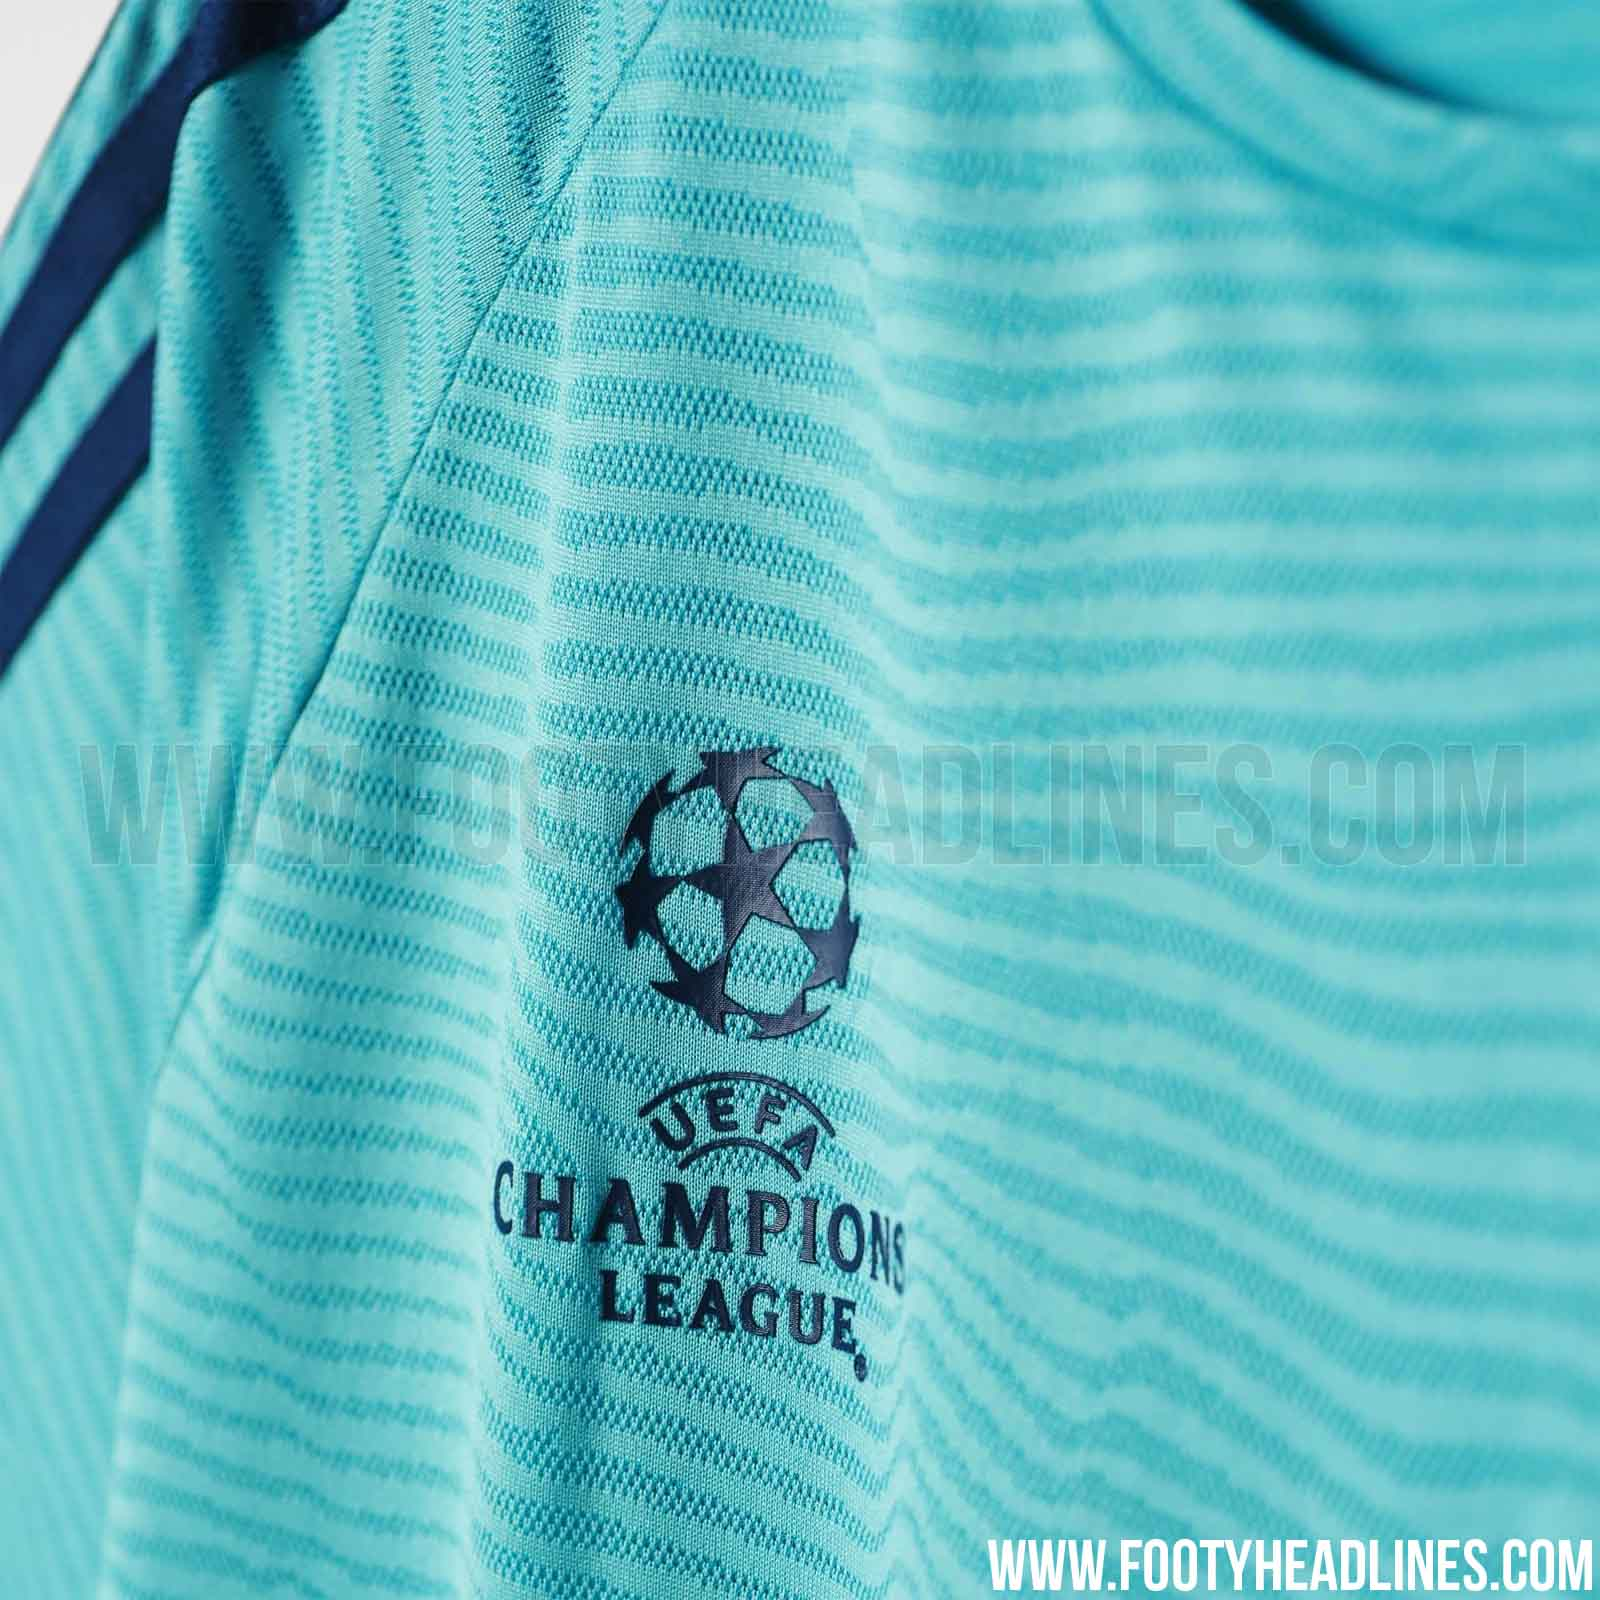 Chelsea 15-16 Champions League Training Kit Revealed - Sports kicks 925865ae2